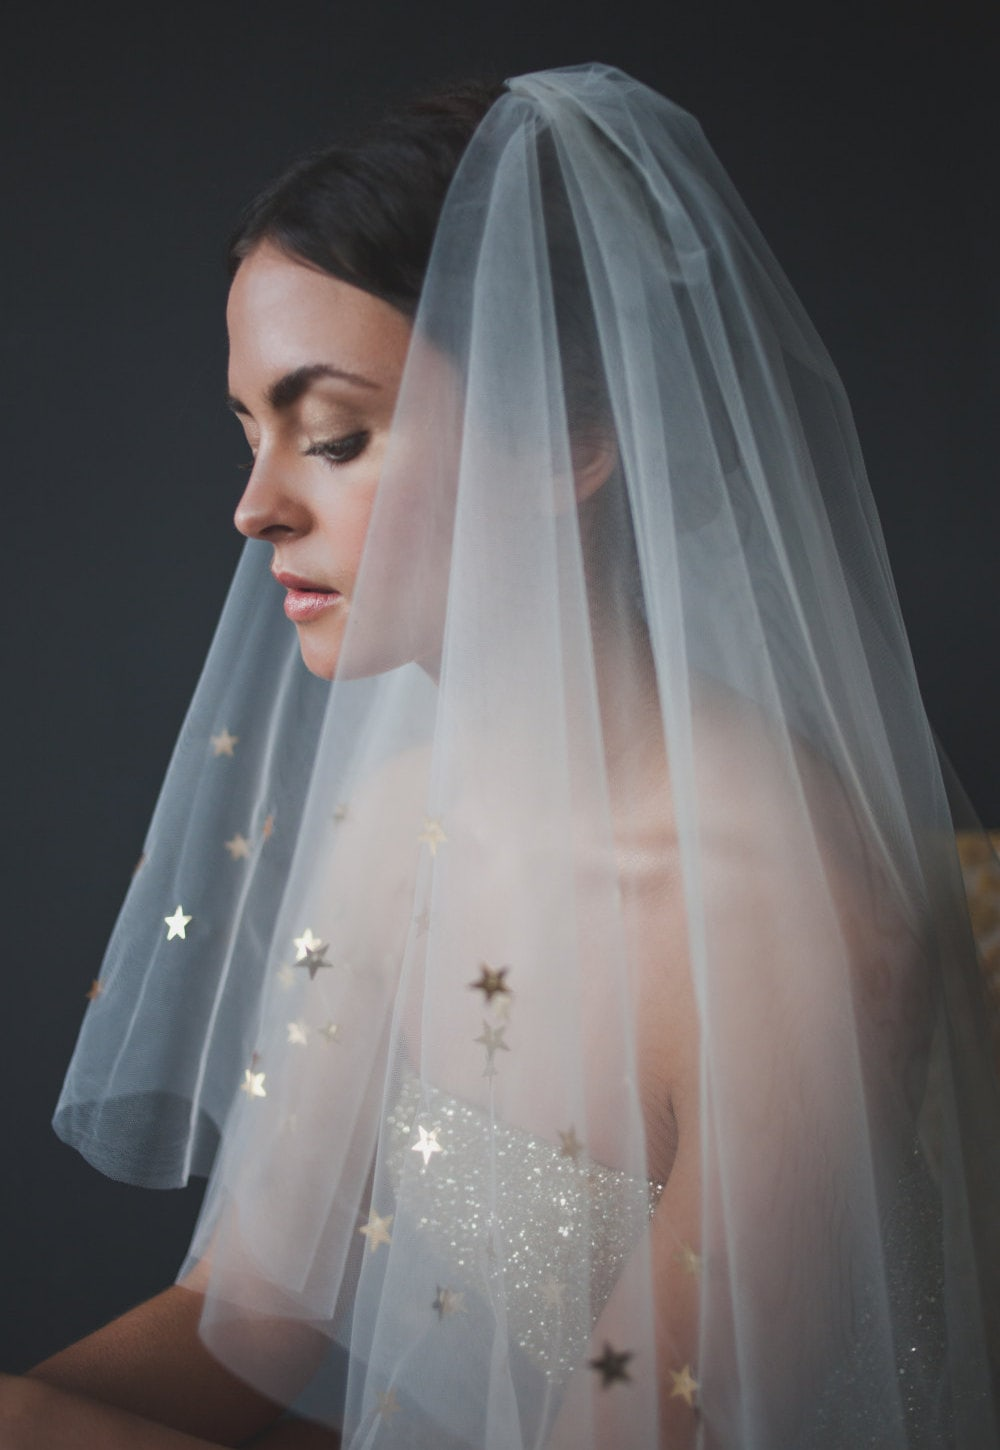 Celestial Wedding Dresses Bridal Accessories Southbound Bride,Sepedi Traditional Wedding Dresses For Bridesmaids